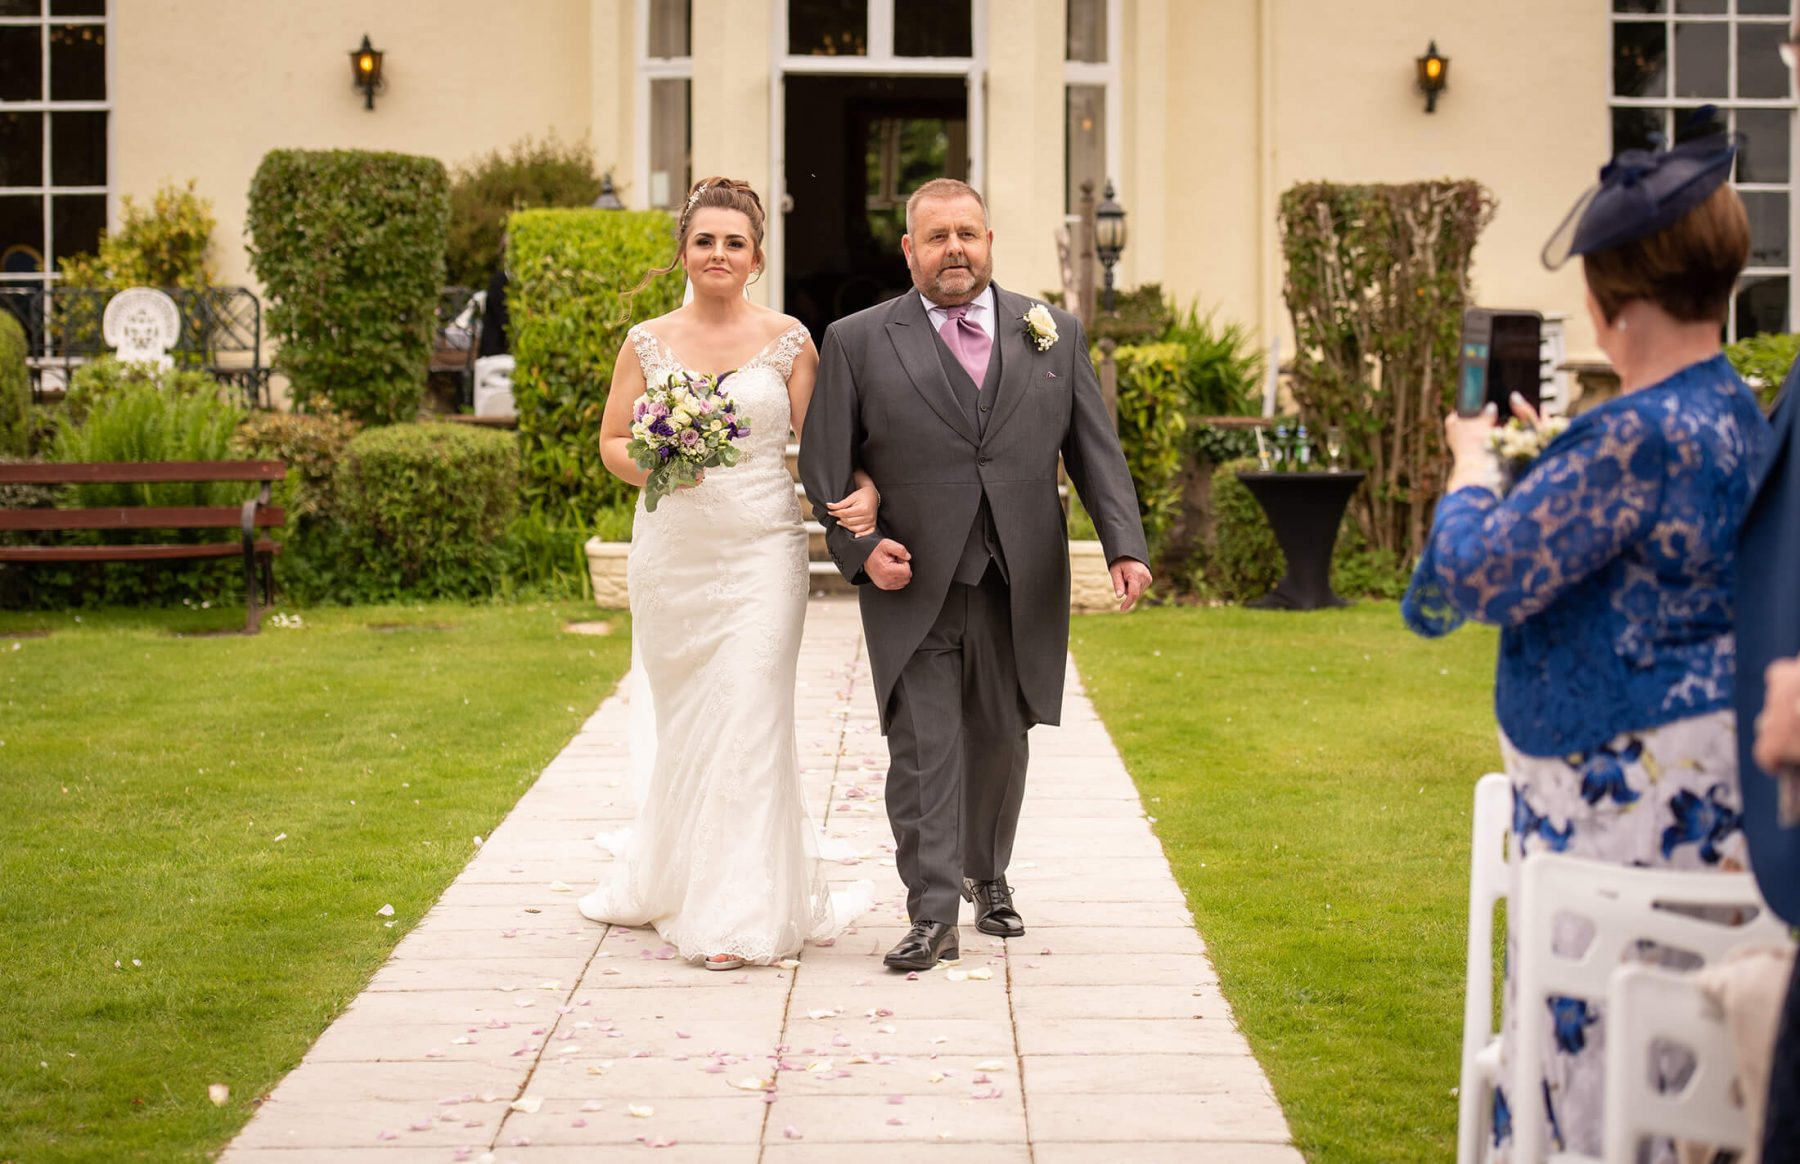 The bride arrives with her father in the gardens for her wedding.